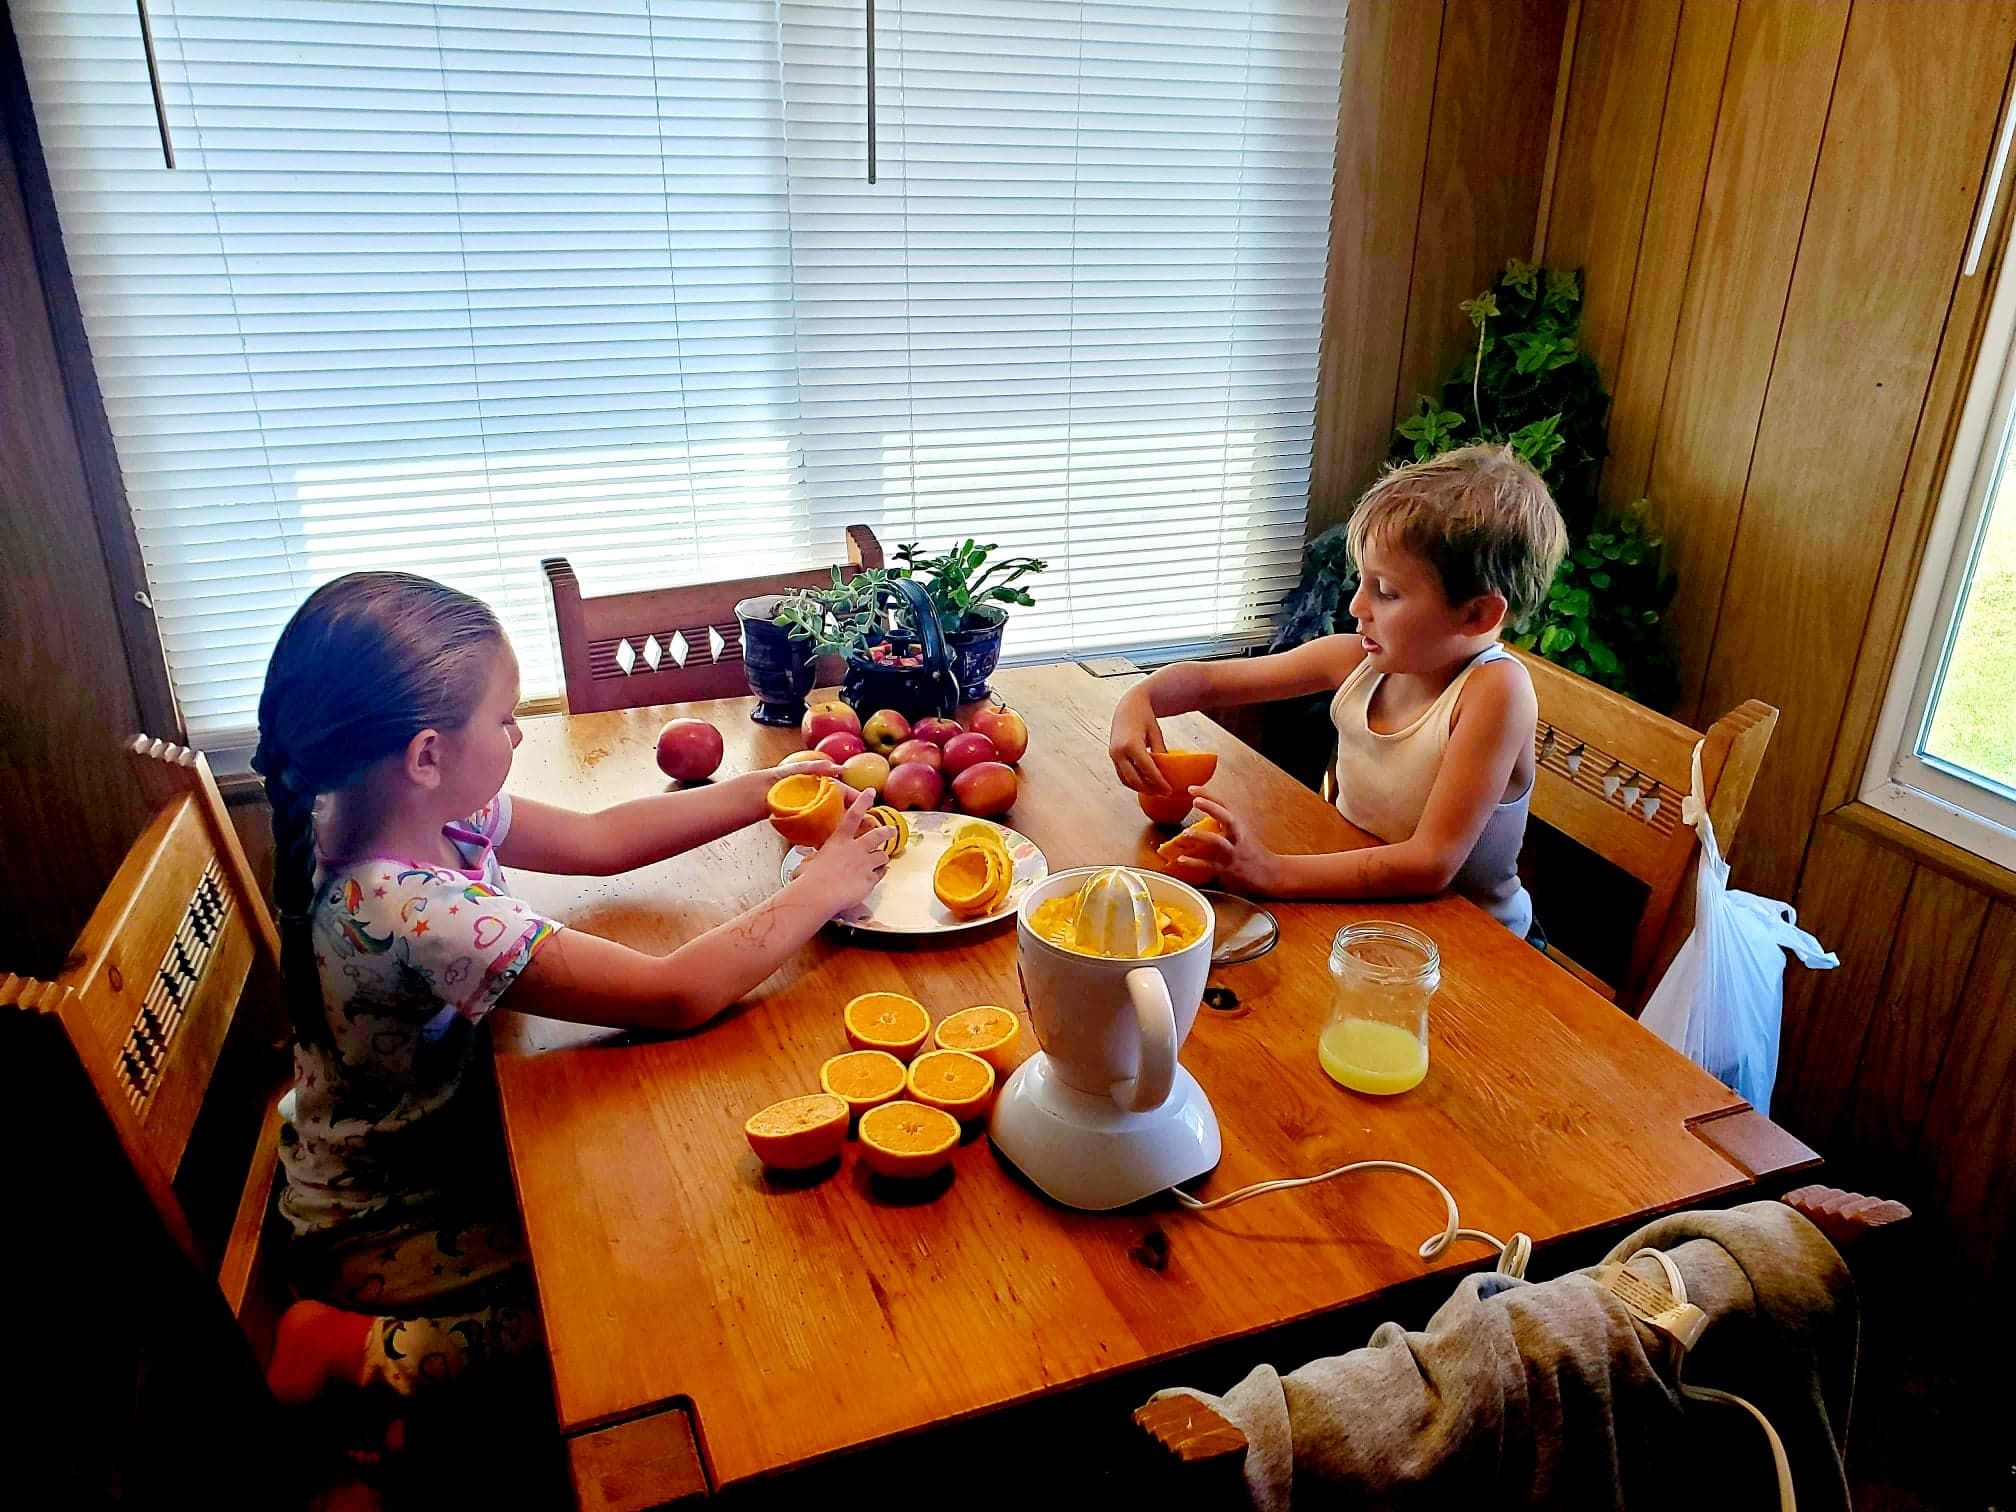 Siblings Juicing Oranges